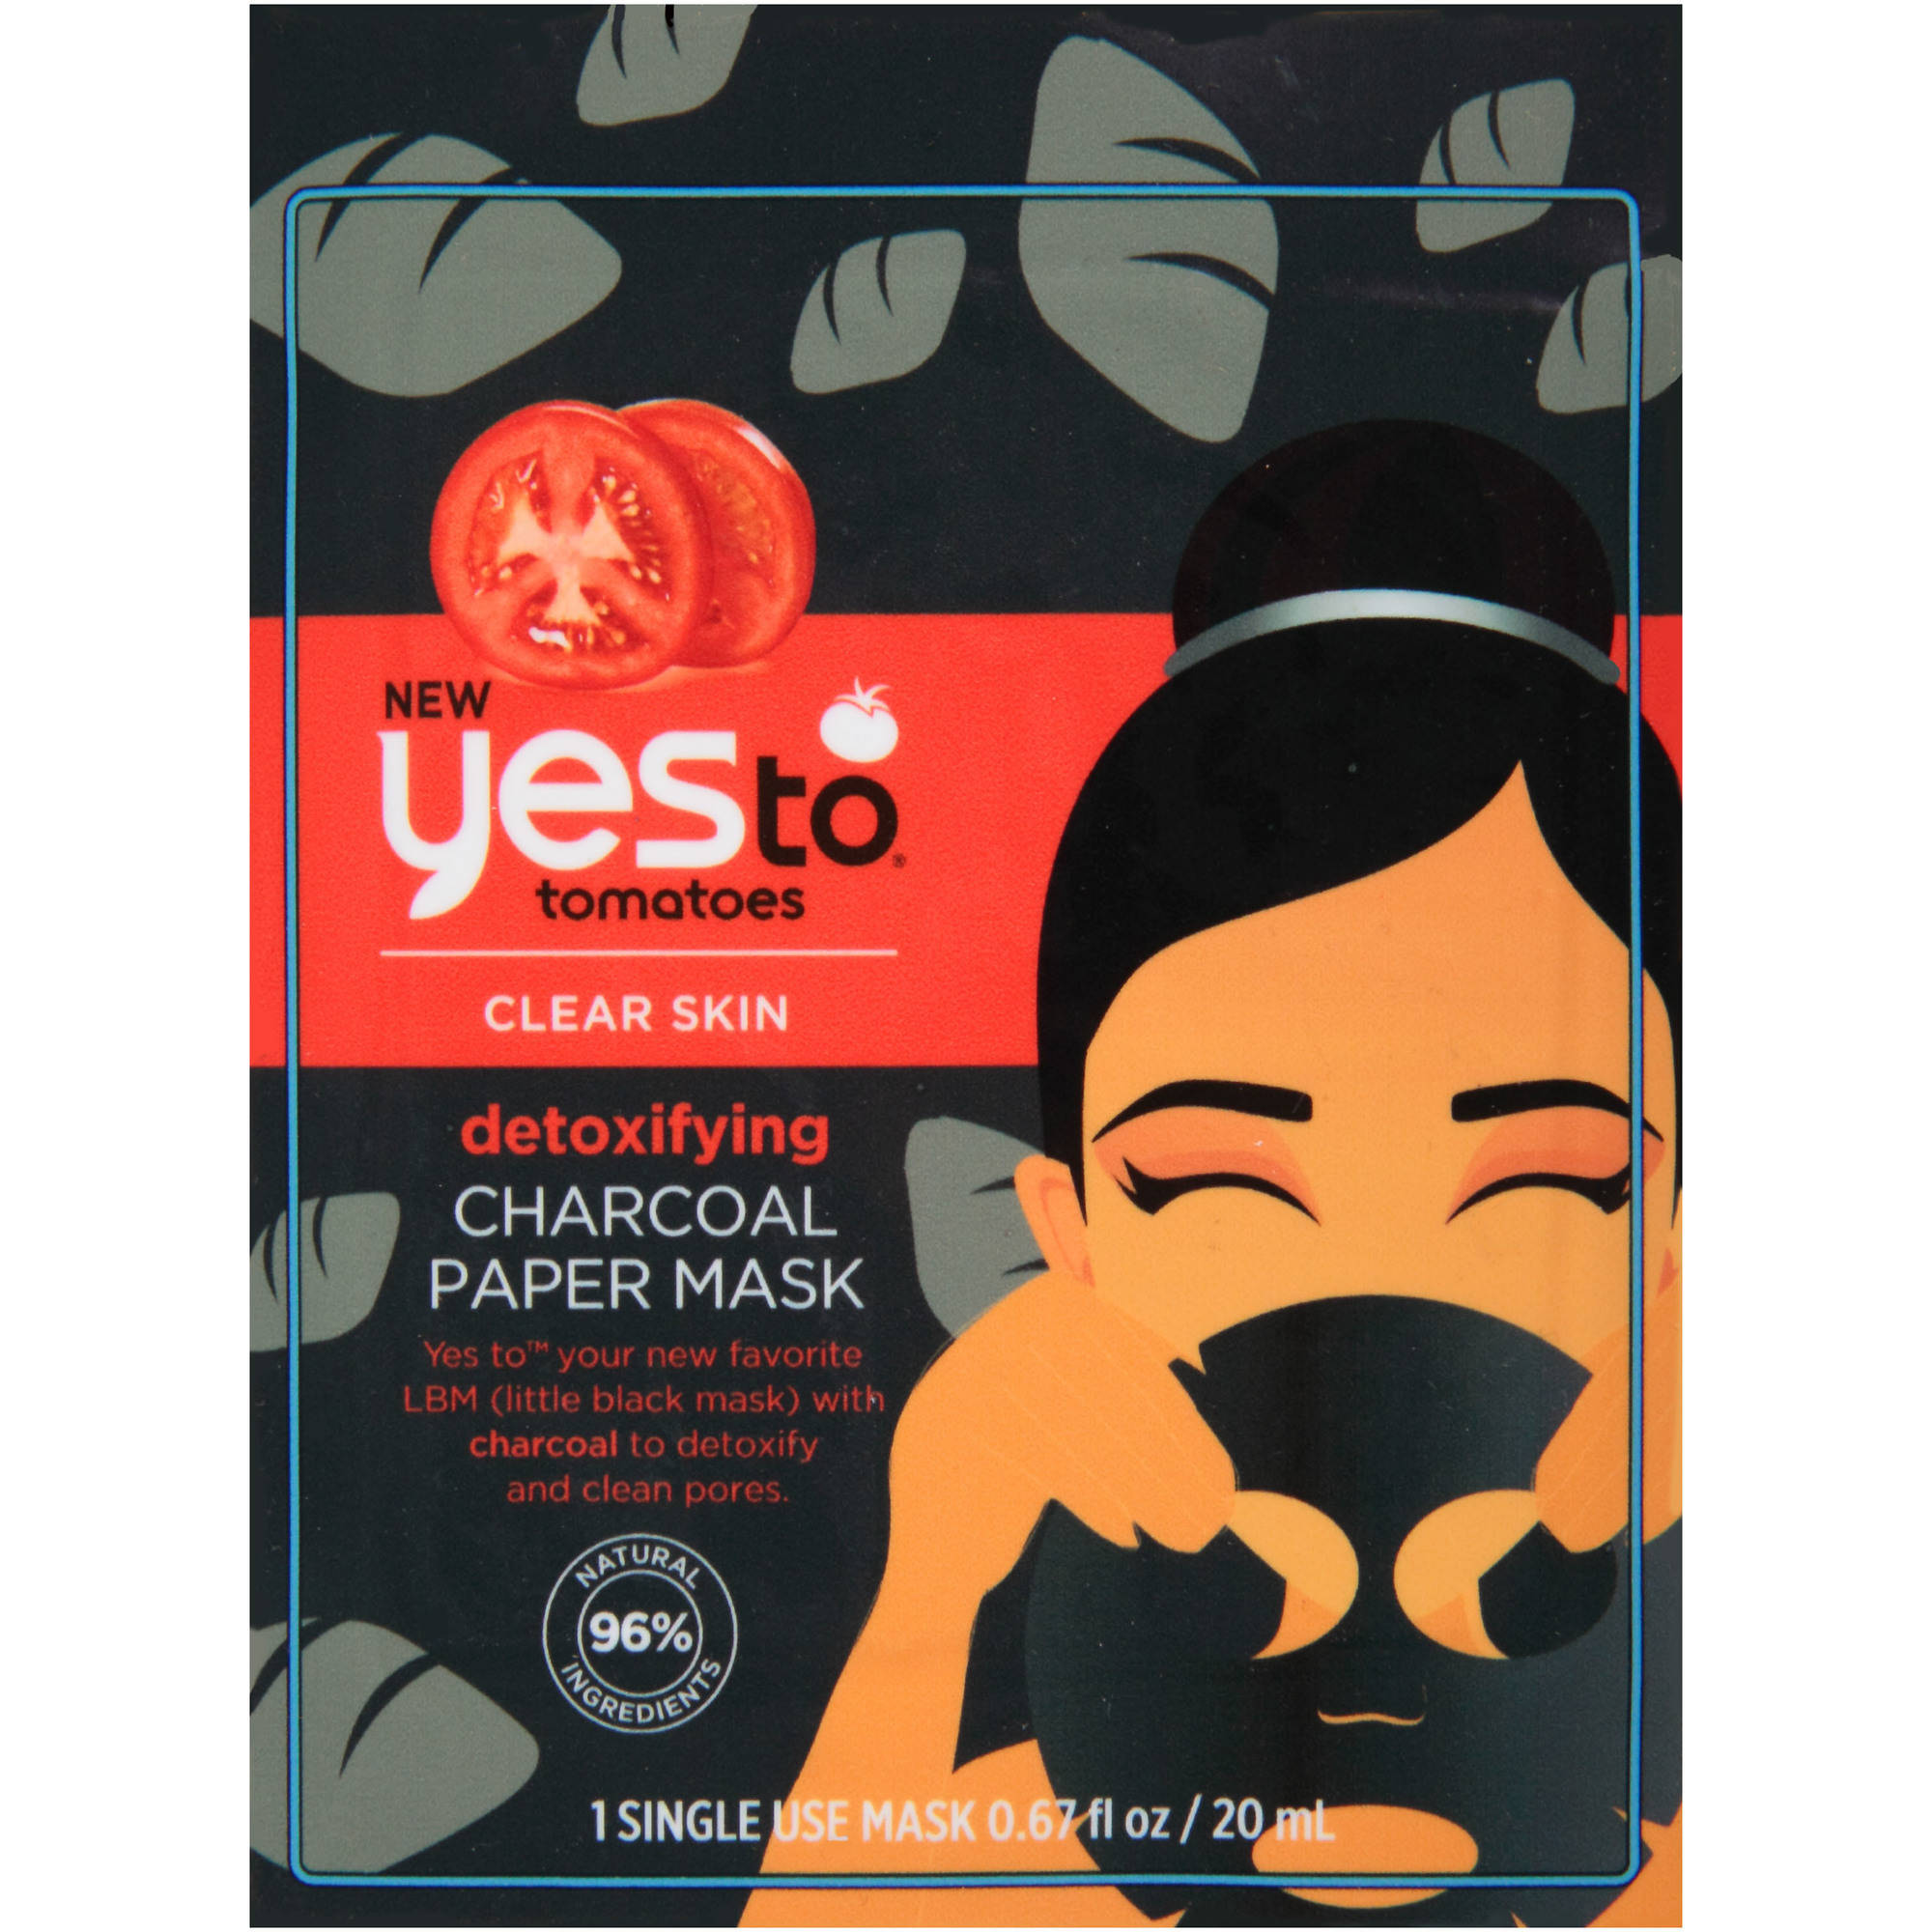 Yes To Tomatoes Detoxifying Charcoal Paper Mask, .67 fl oz